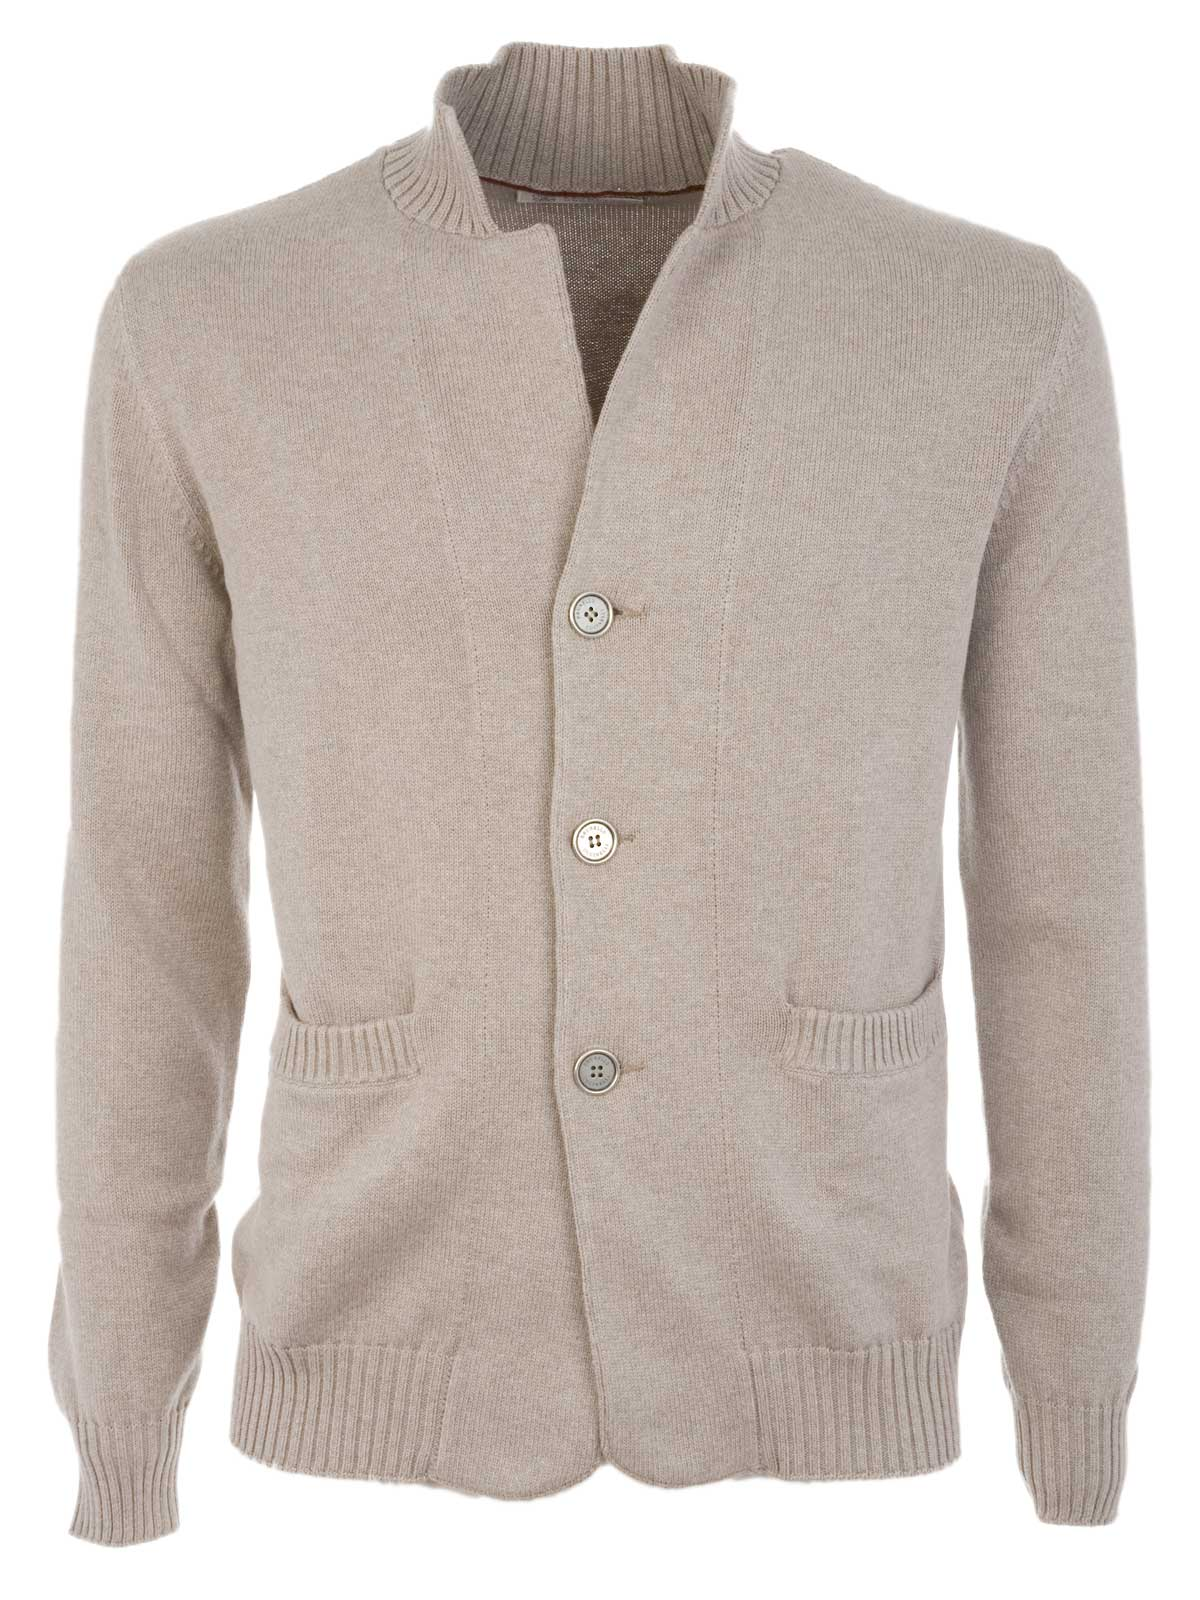 be26612d7fd4 Brunello Cucinelli Cardigan C2958